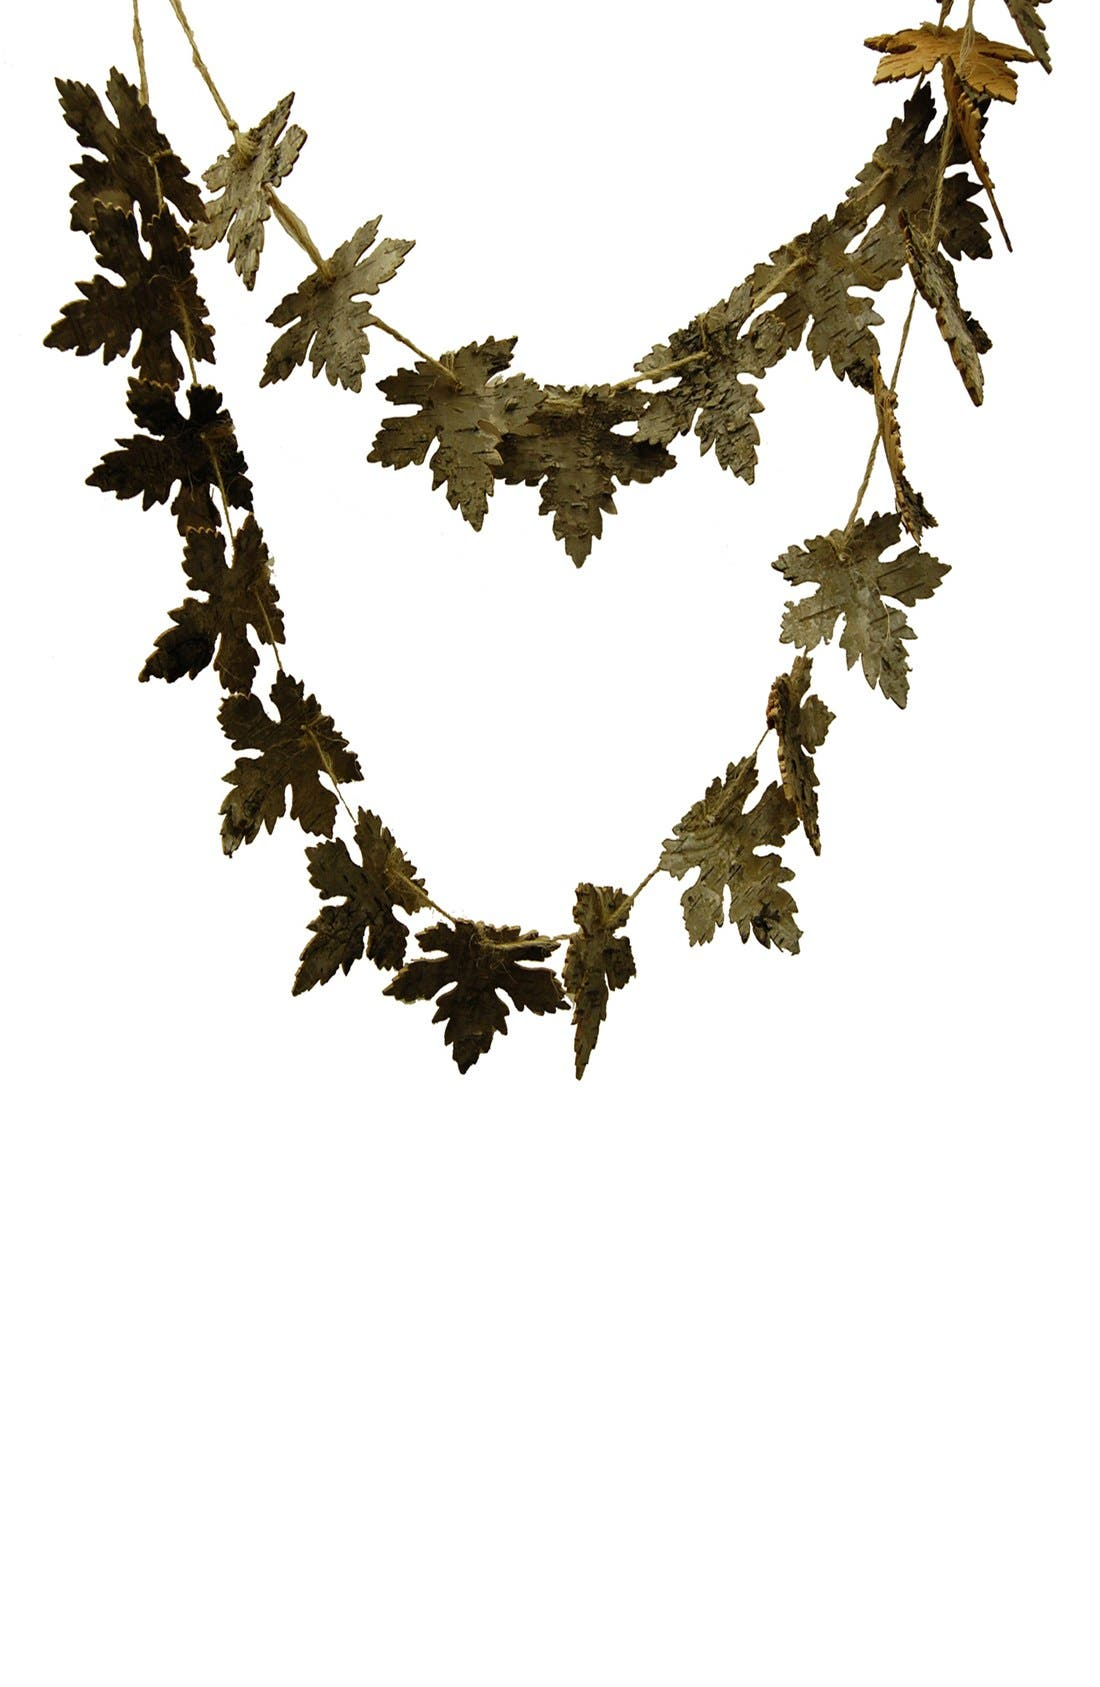 Alternate Image 1 Selected - Shea's Wildflower Artificial Maple Leaf Garland